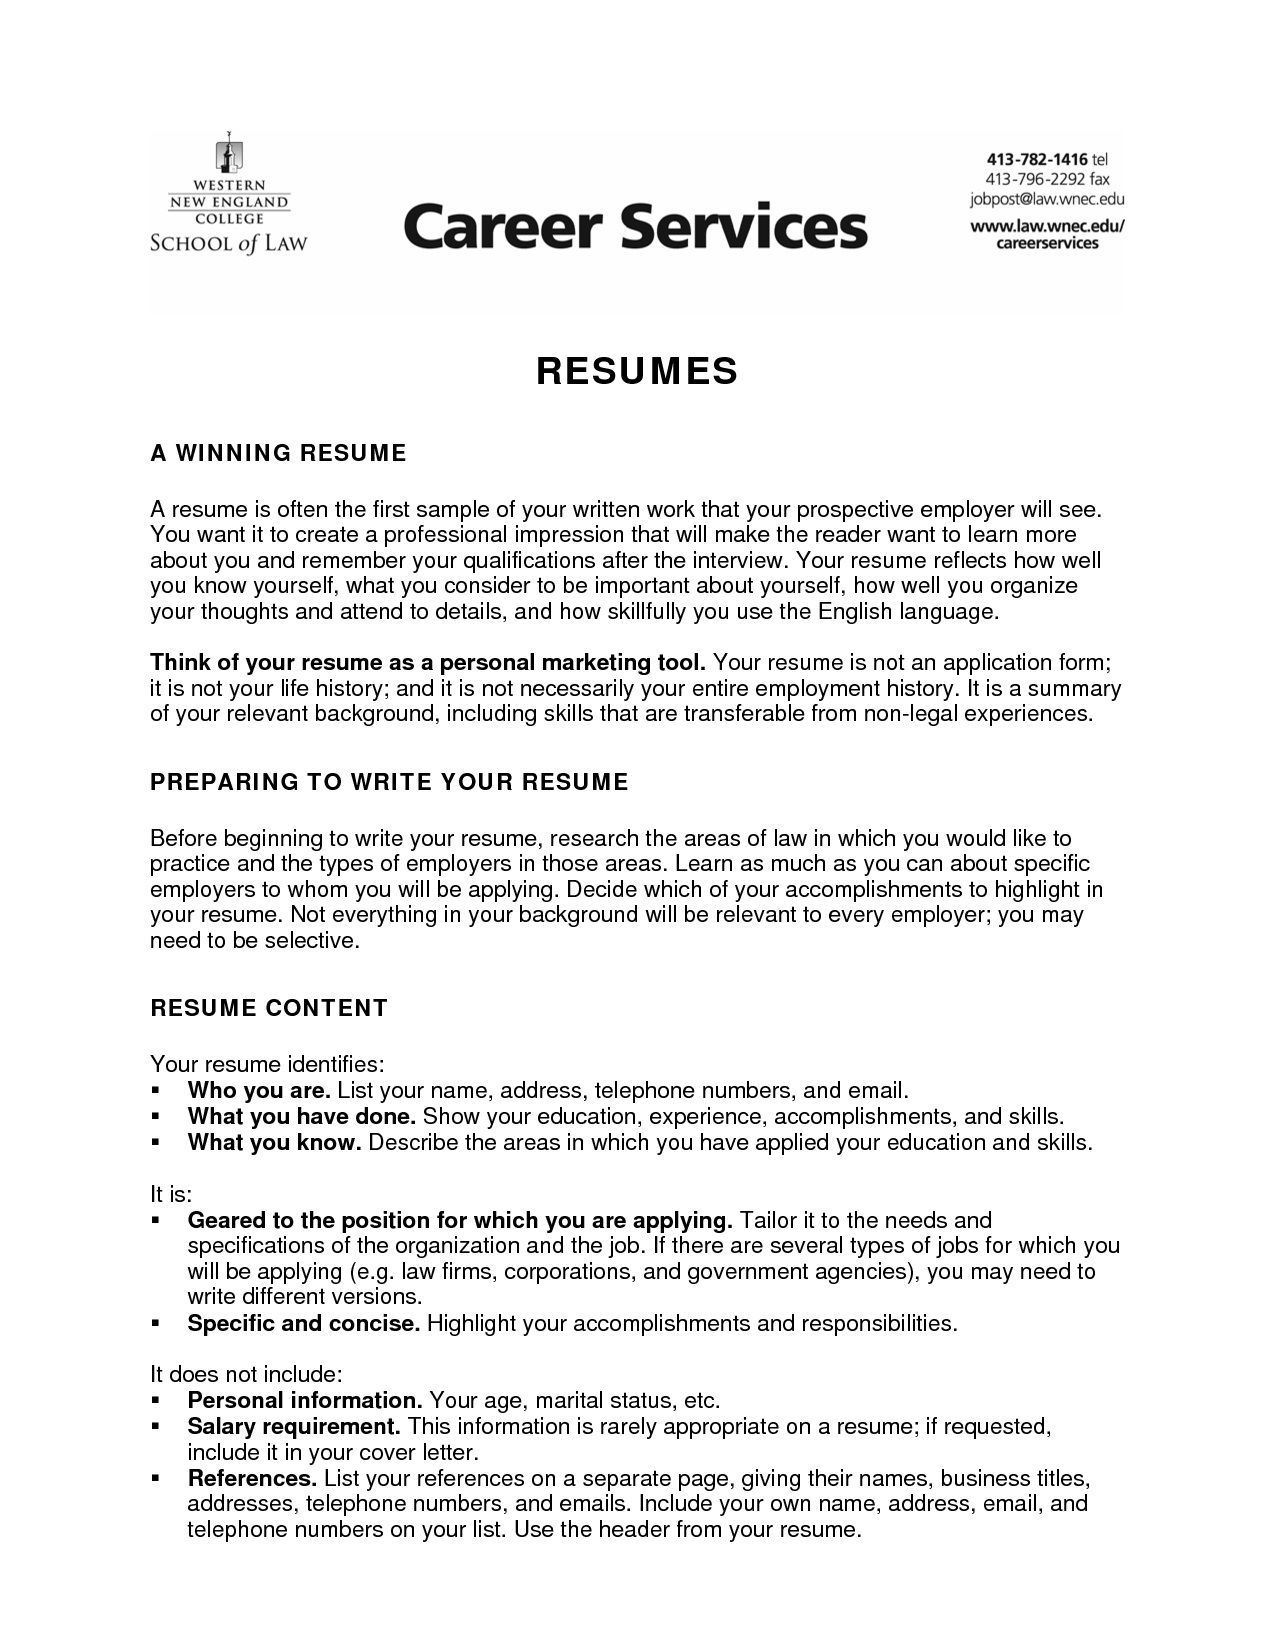 Academic Resume Examples Excellent Resume For Recent Grad Business